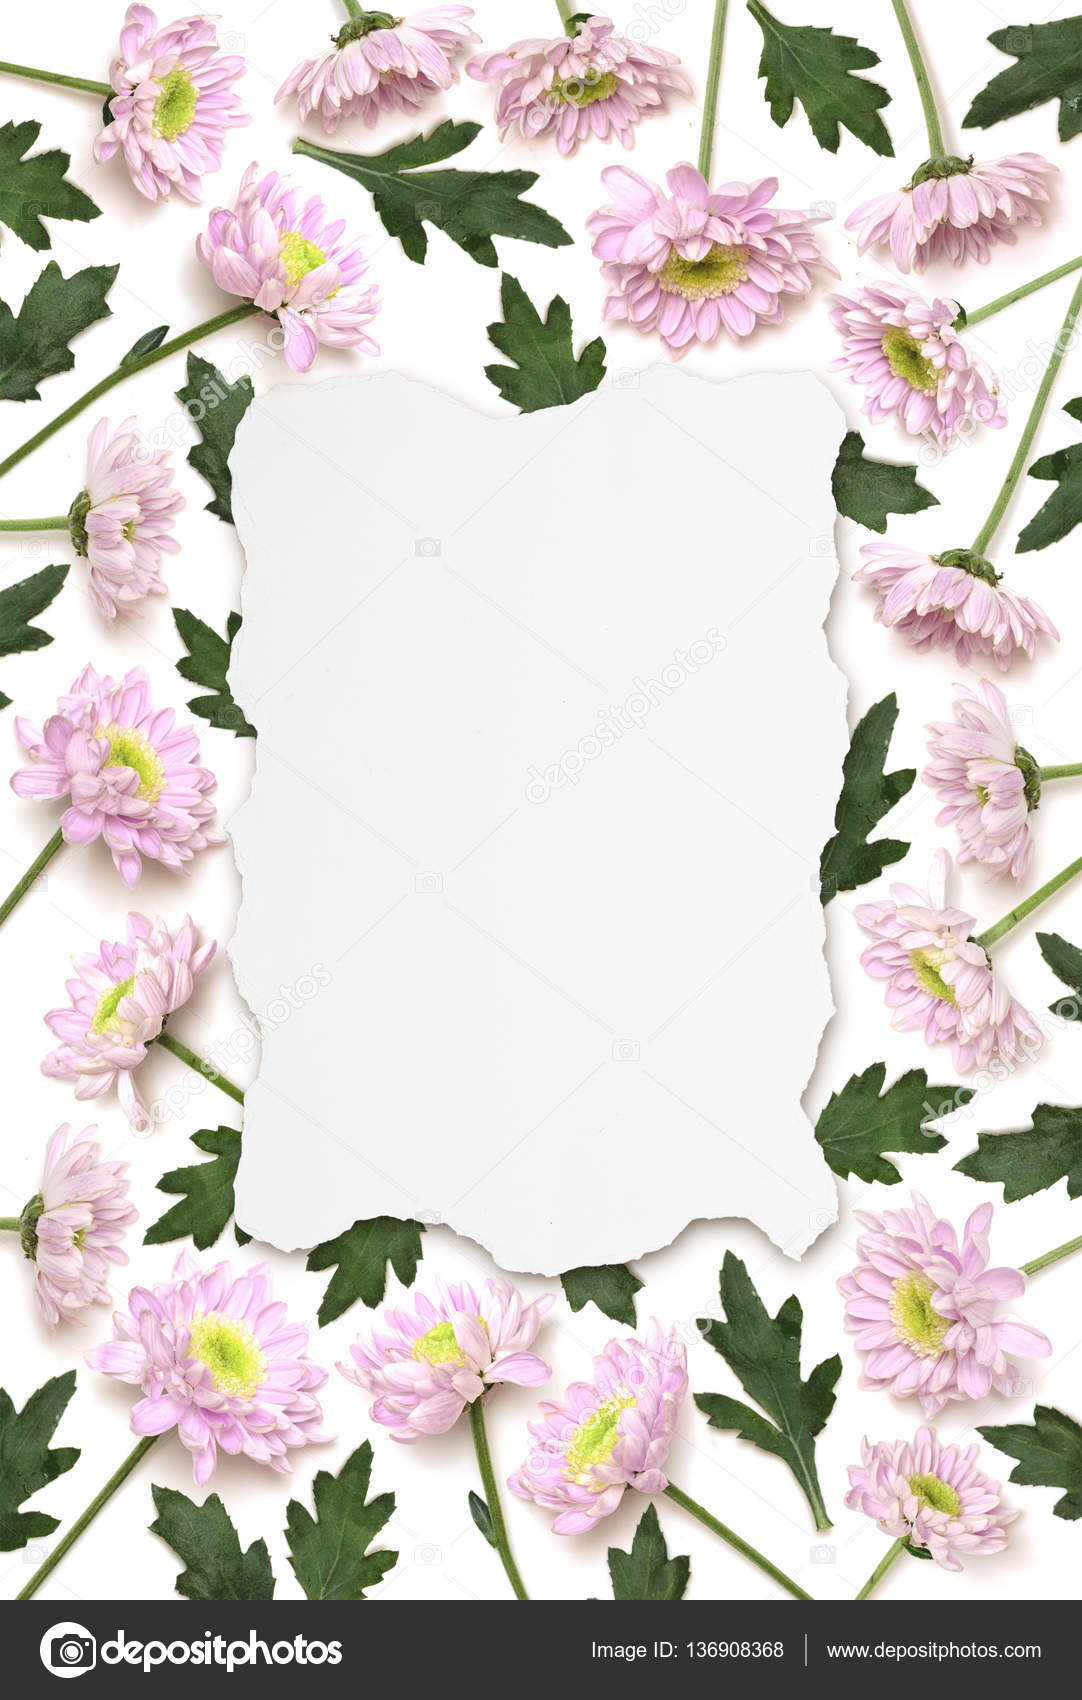 Pink Chrysanthemum Flower Frame Of Ripped White Paper Background